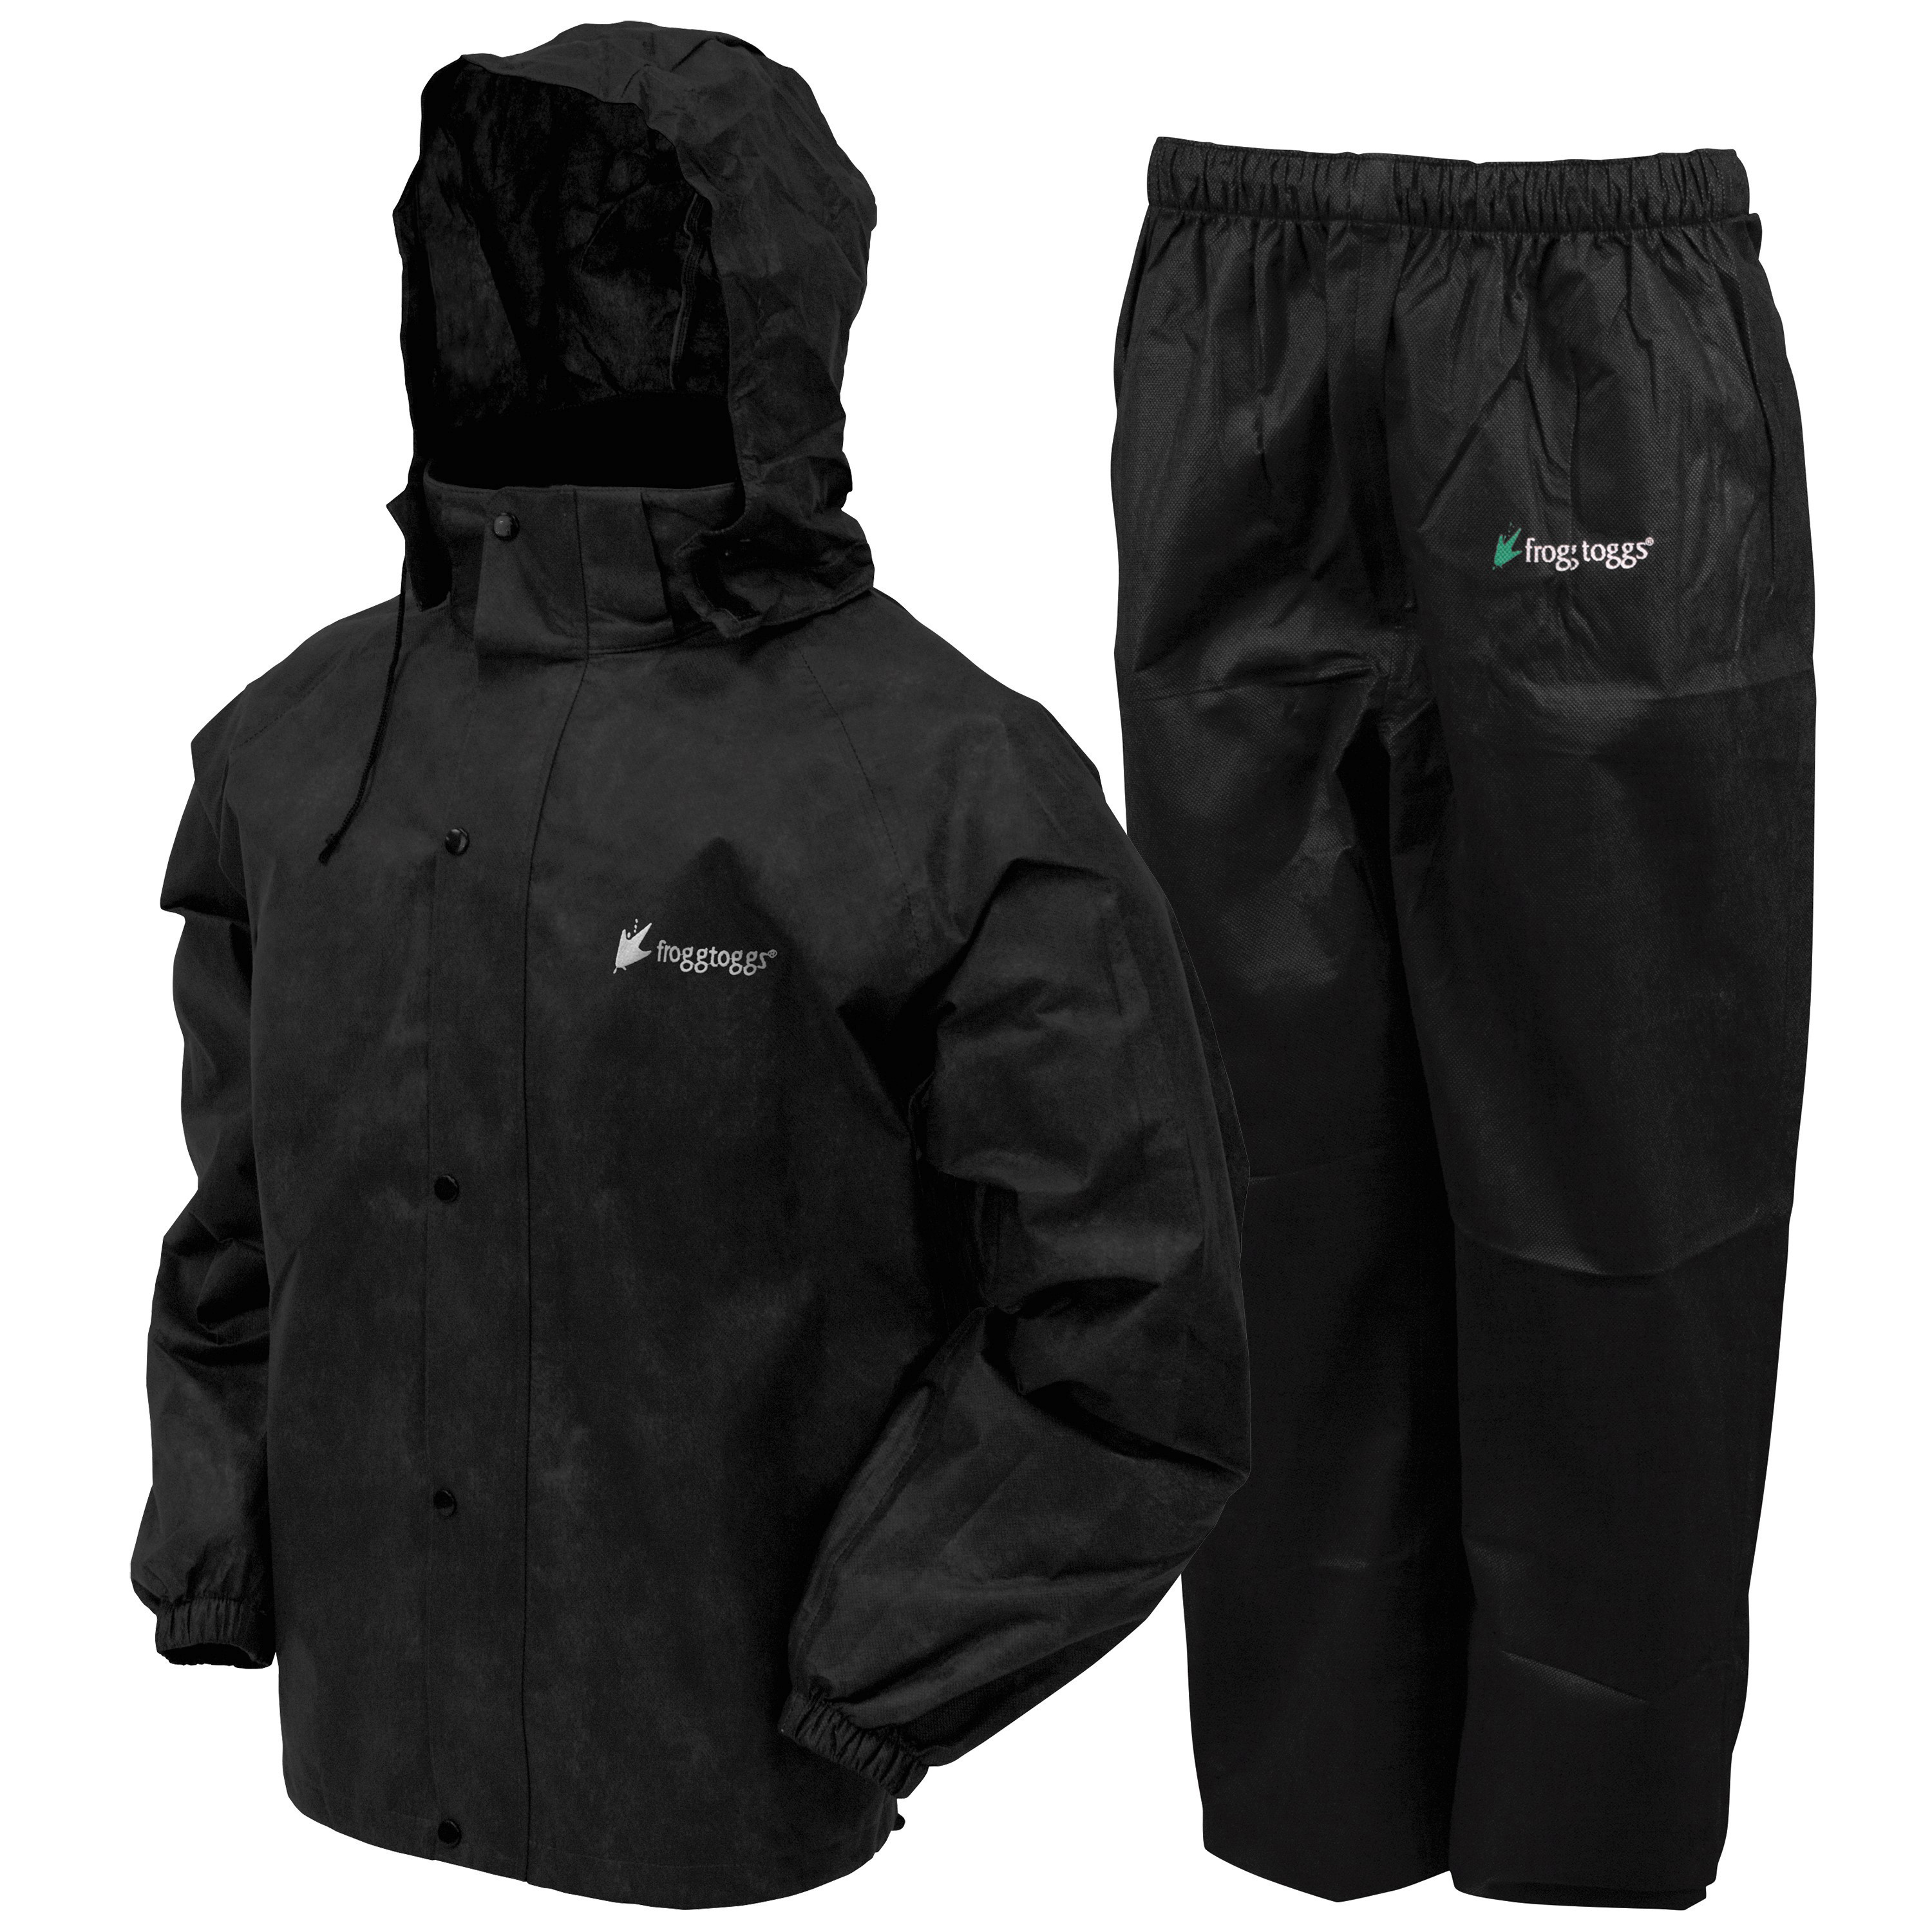 Frogg Toggs All Sport Rain Suit Black, 3X-Large by Frogg Toggs